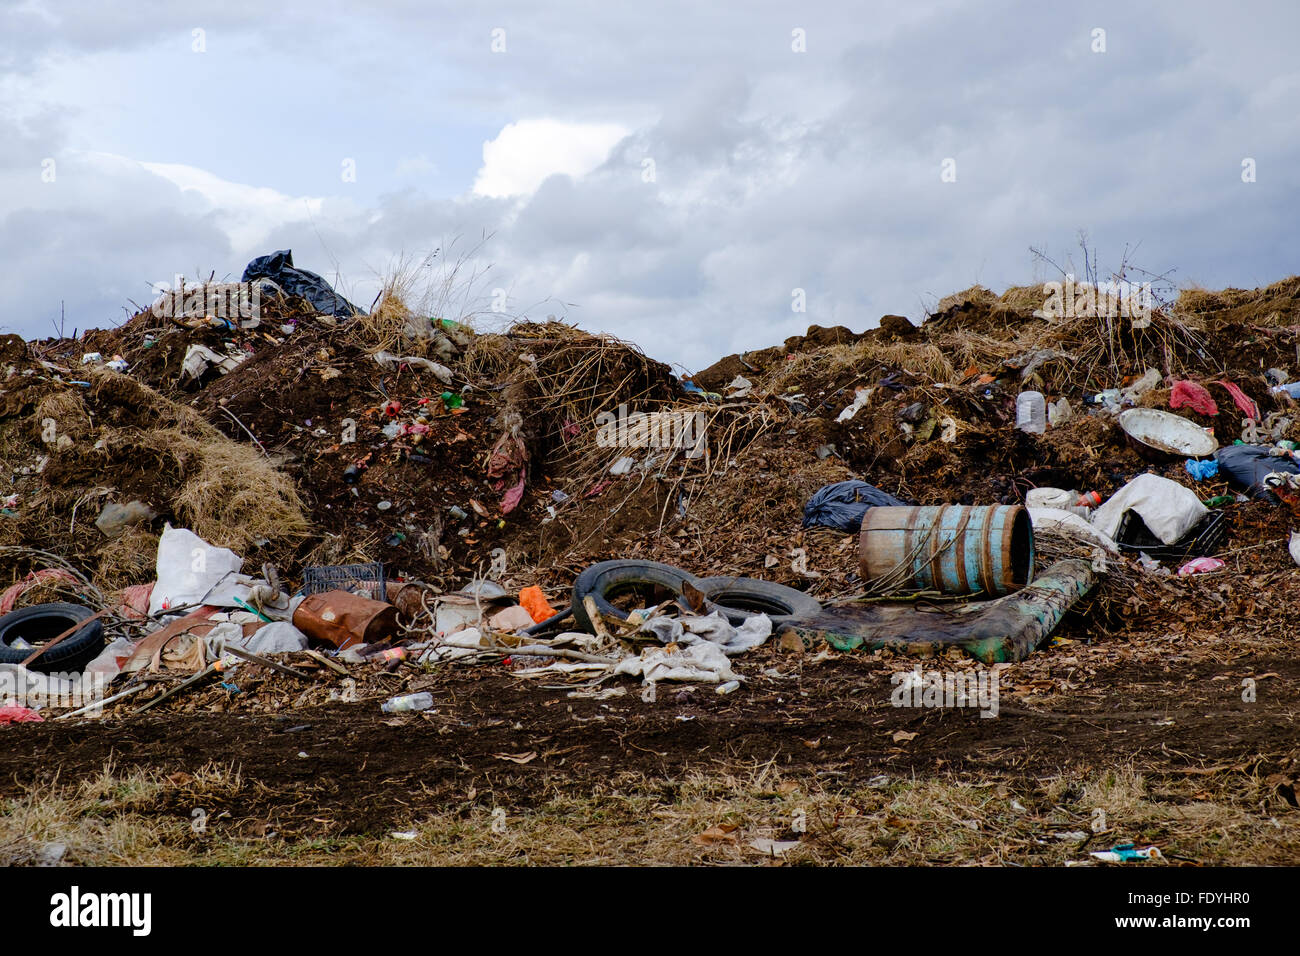 Disposed garbage polluting environment near a village in Transyilvania, Romania. - Stock Image